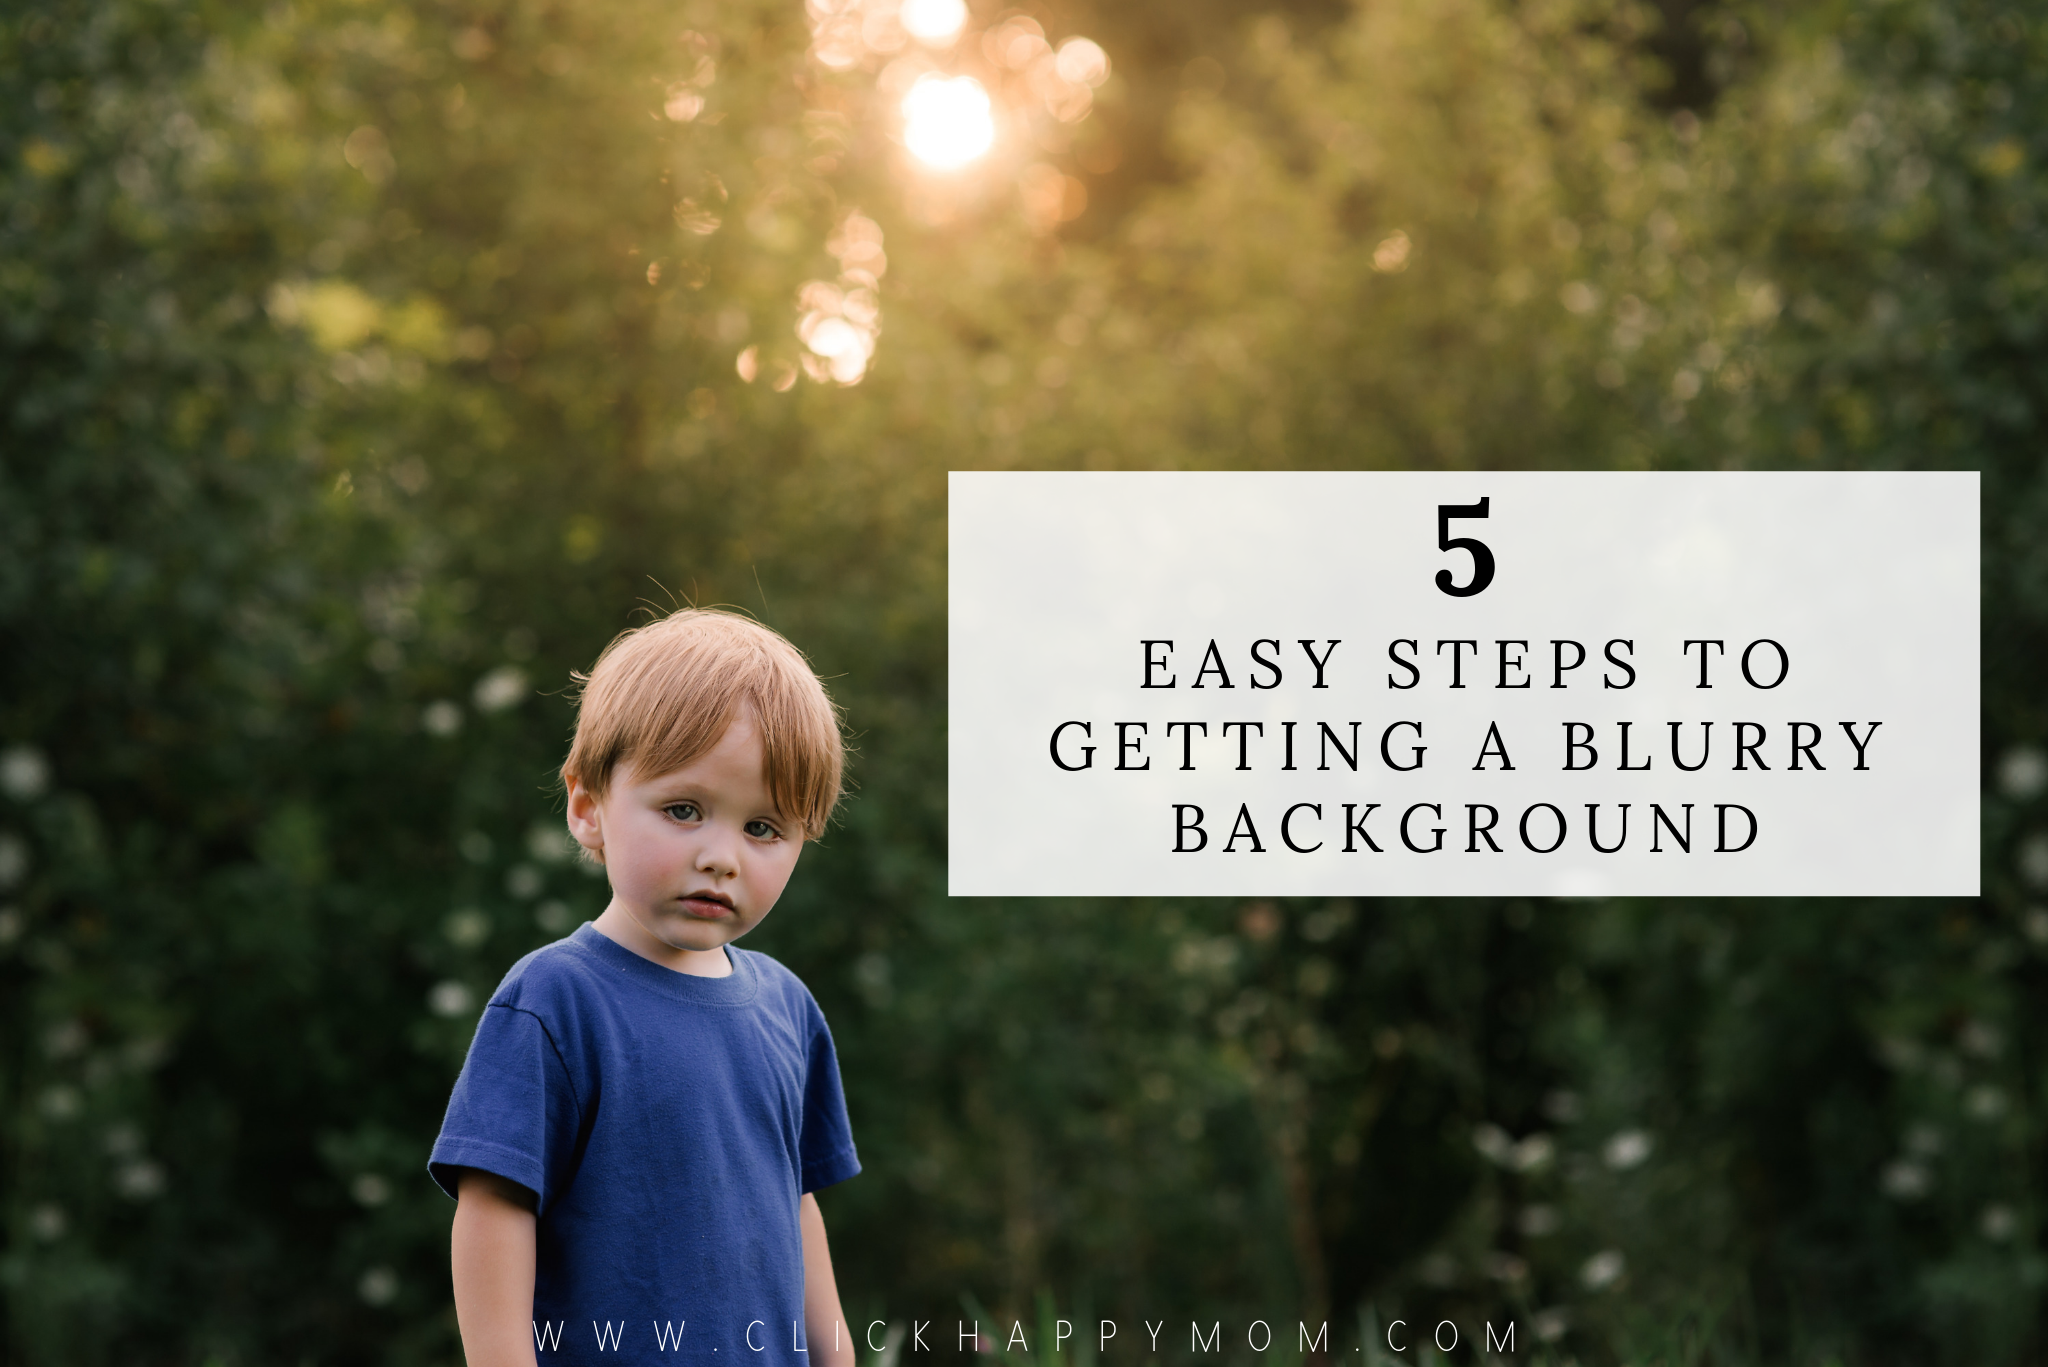 5 Easy Steps to Getting a Blurry Background